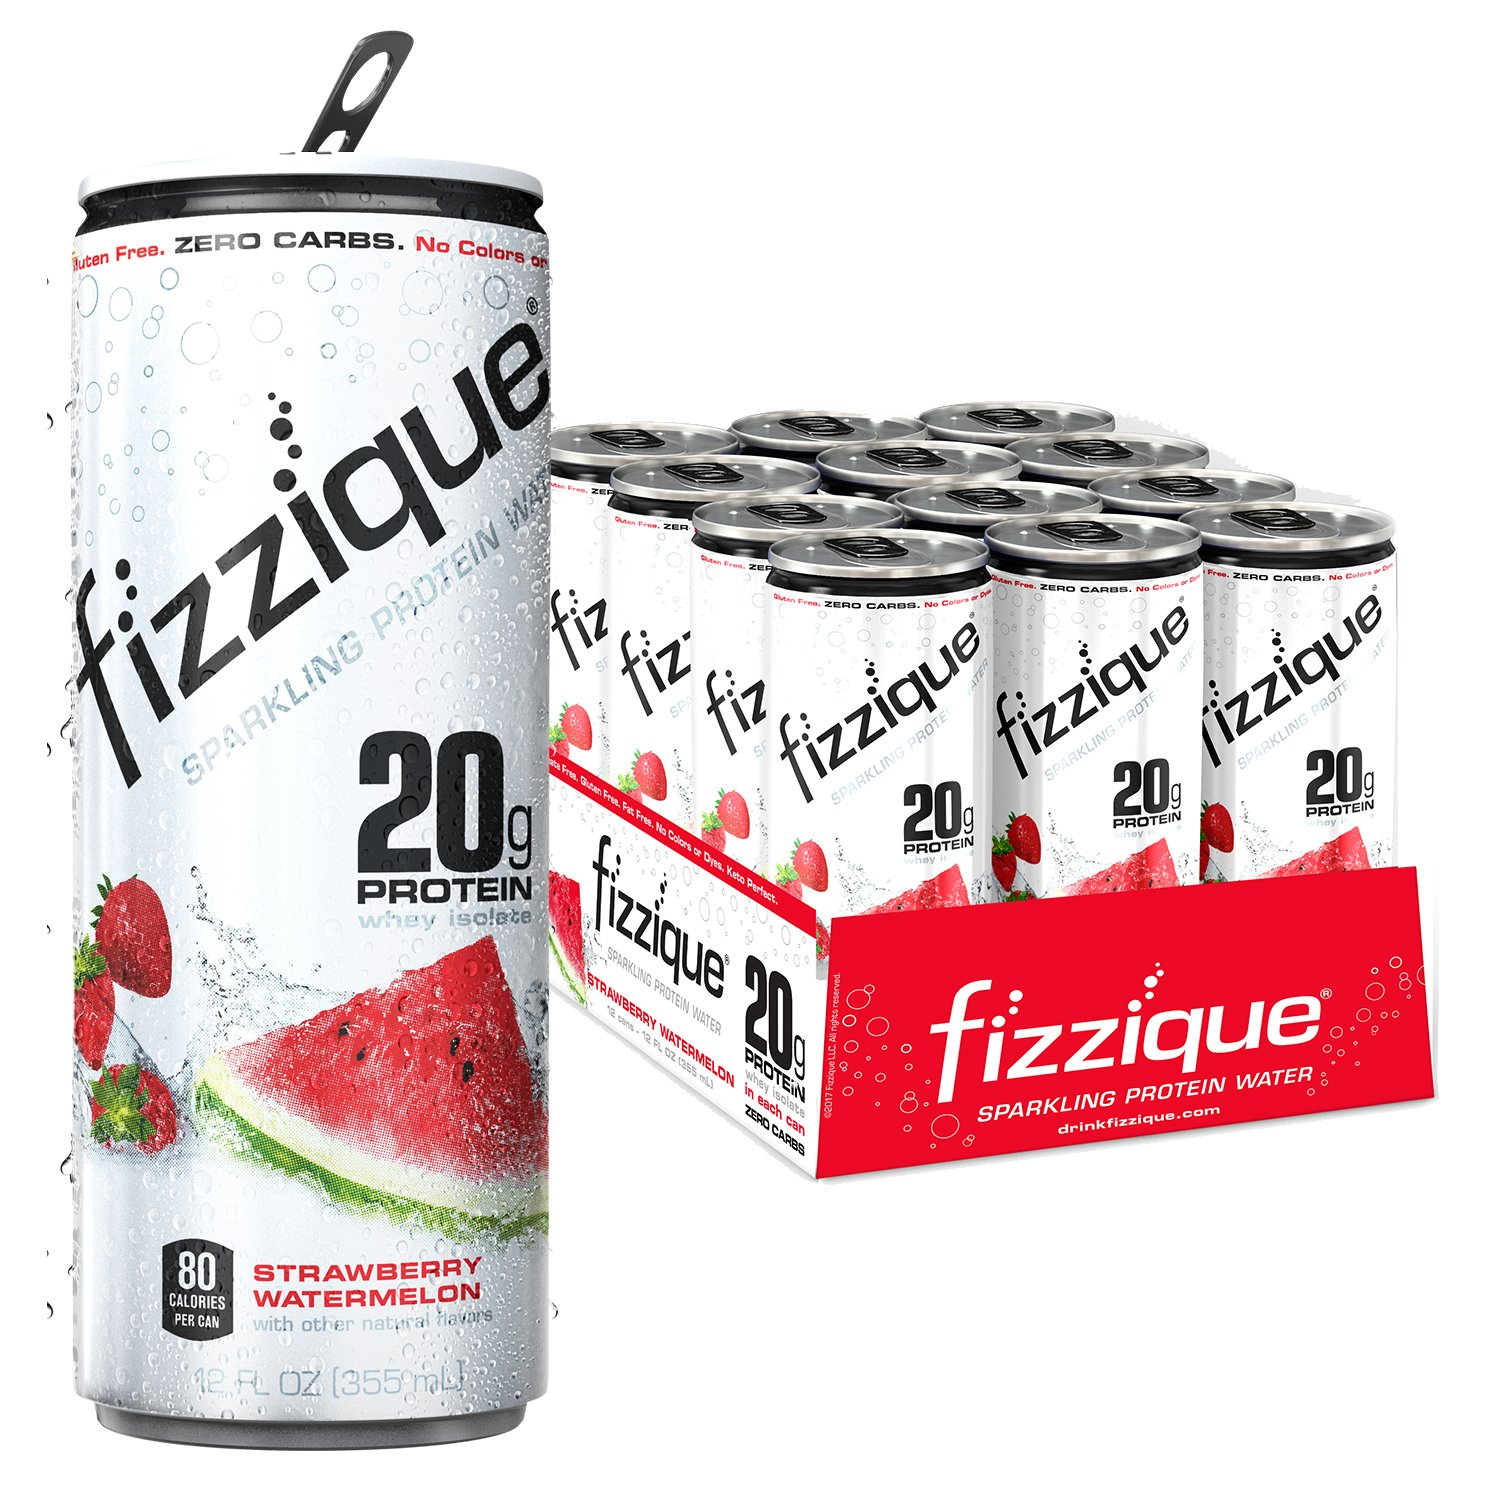 Fizzique Sparkling Protein Water, Strawberry Watermelon, 12 Count by fizzique